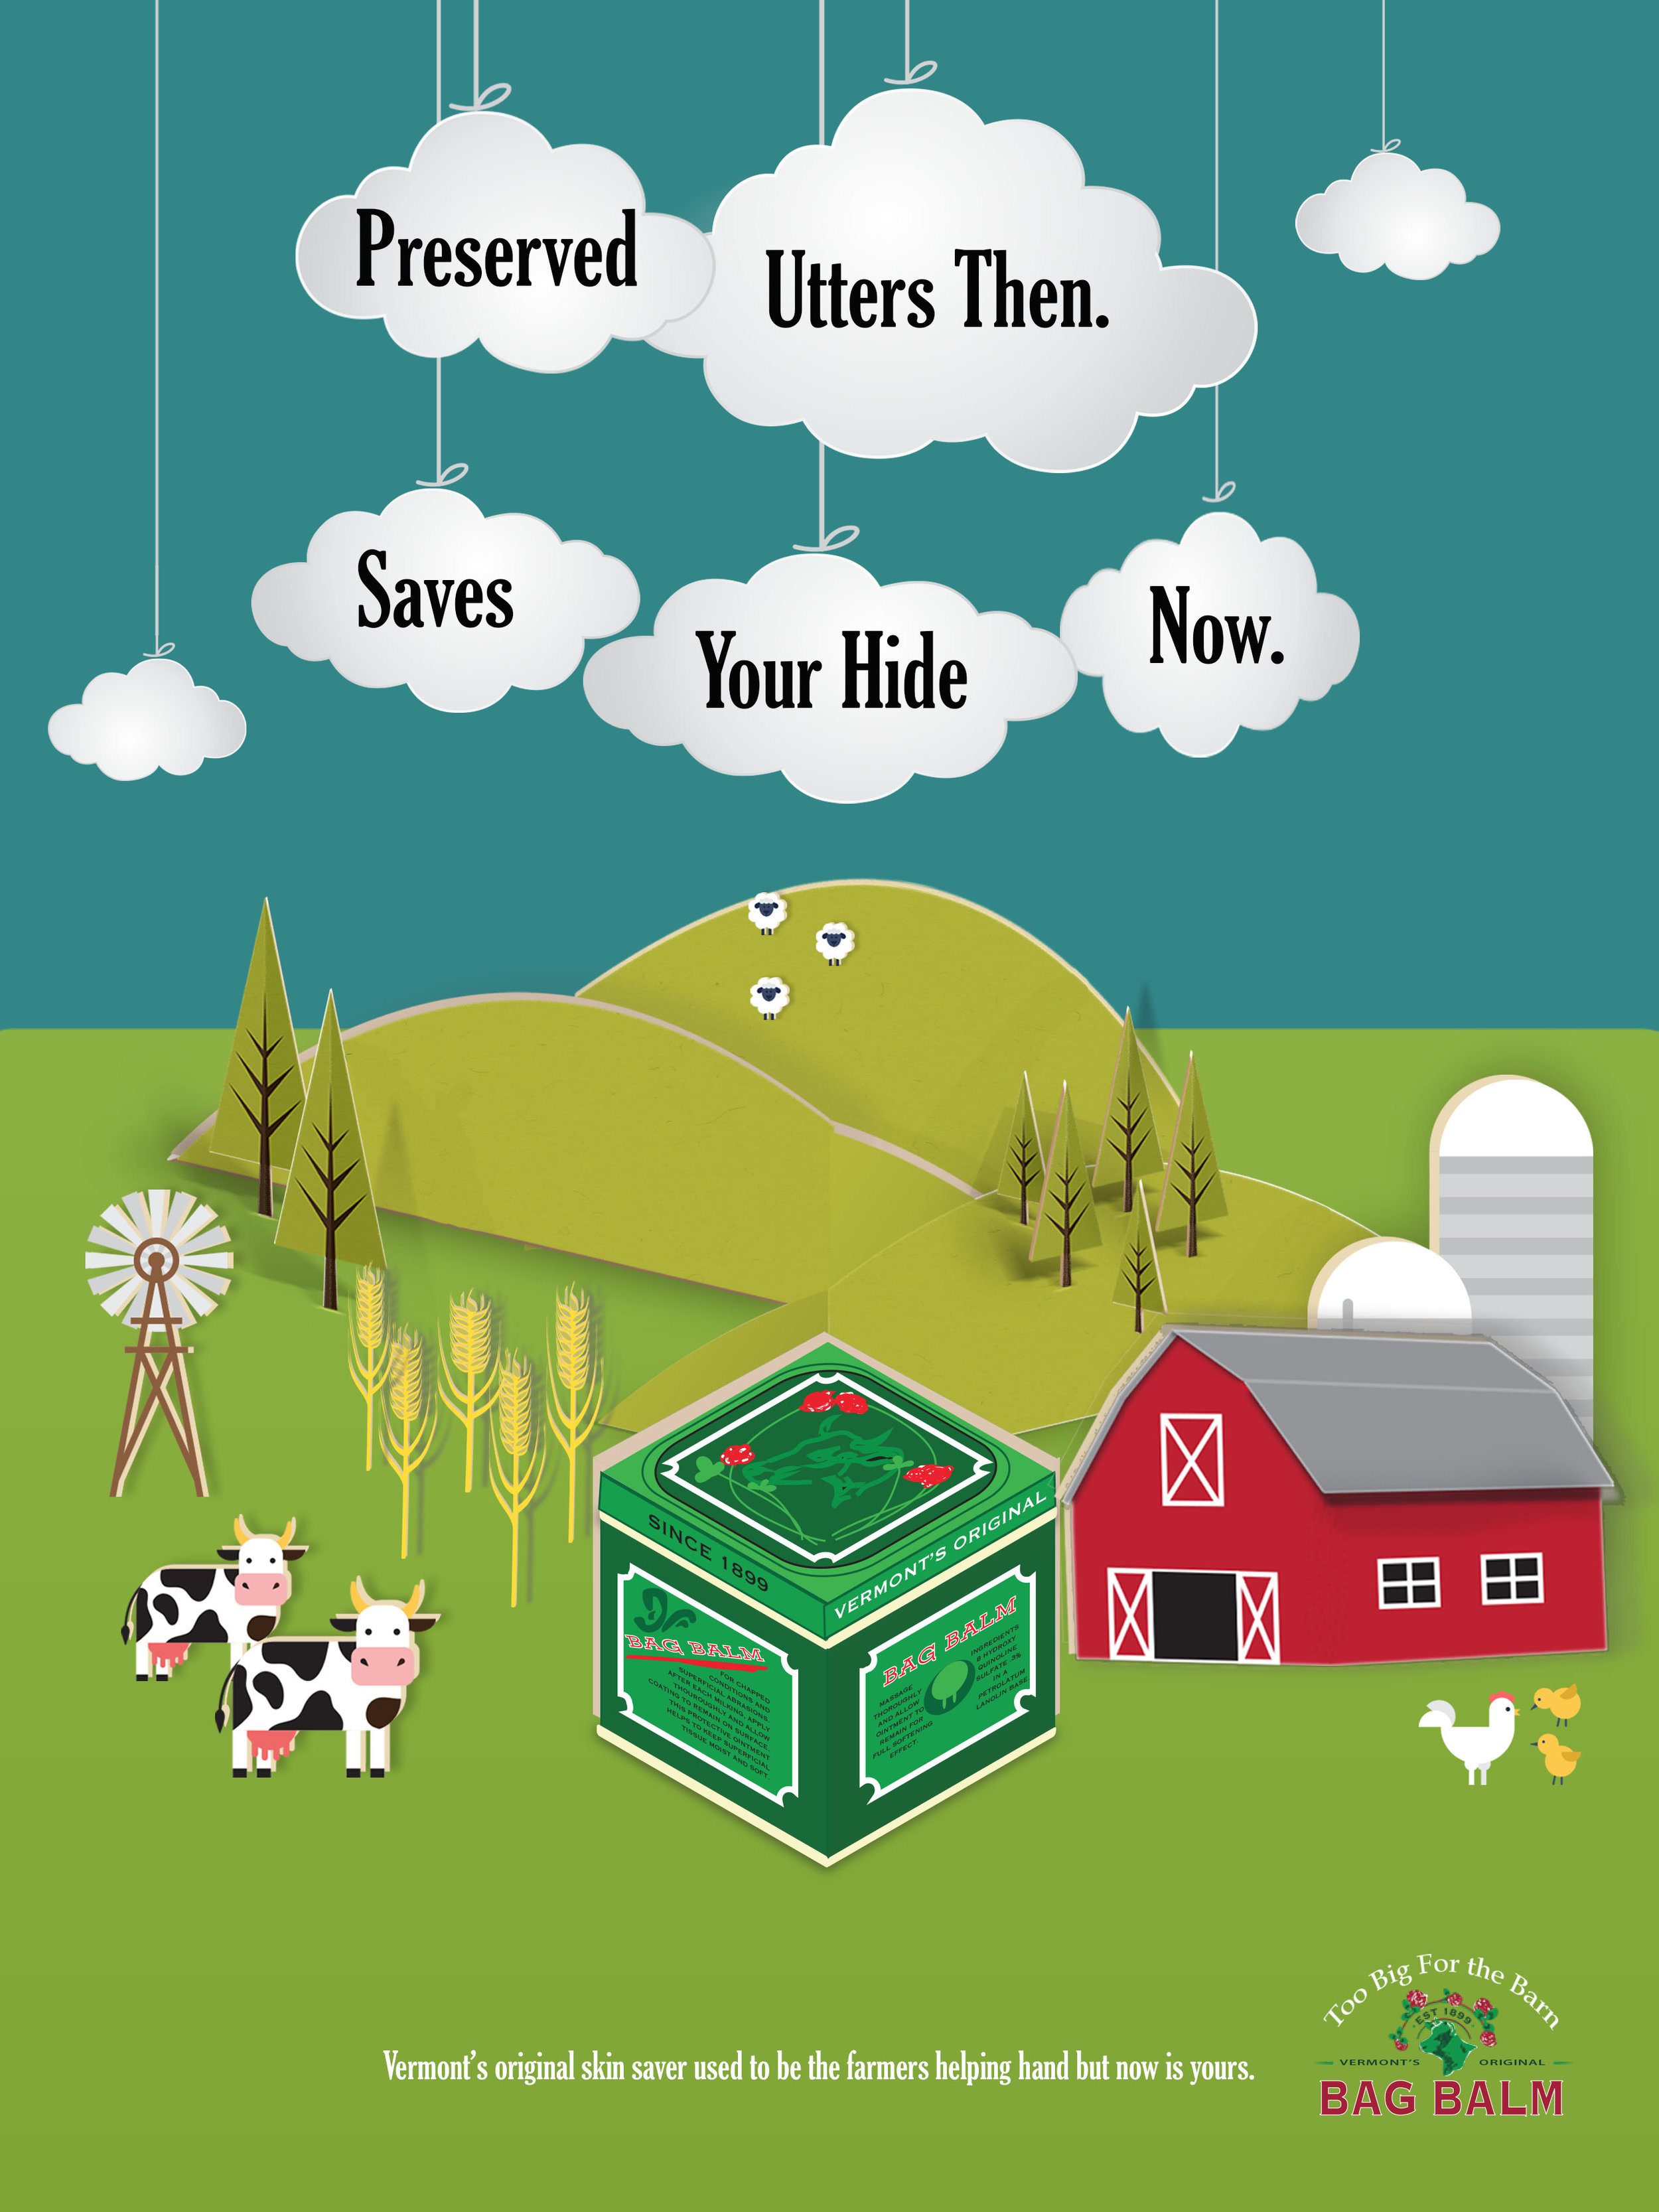 Body Copy: Vermont's original skin saver used to be the farmer's helping hand but now is yours.